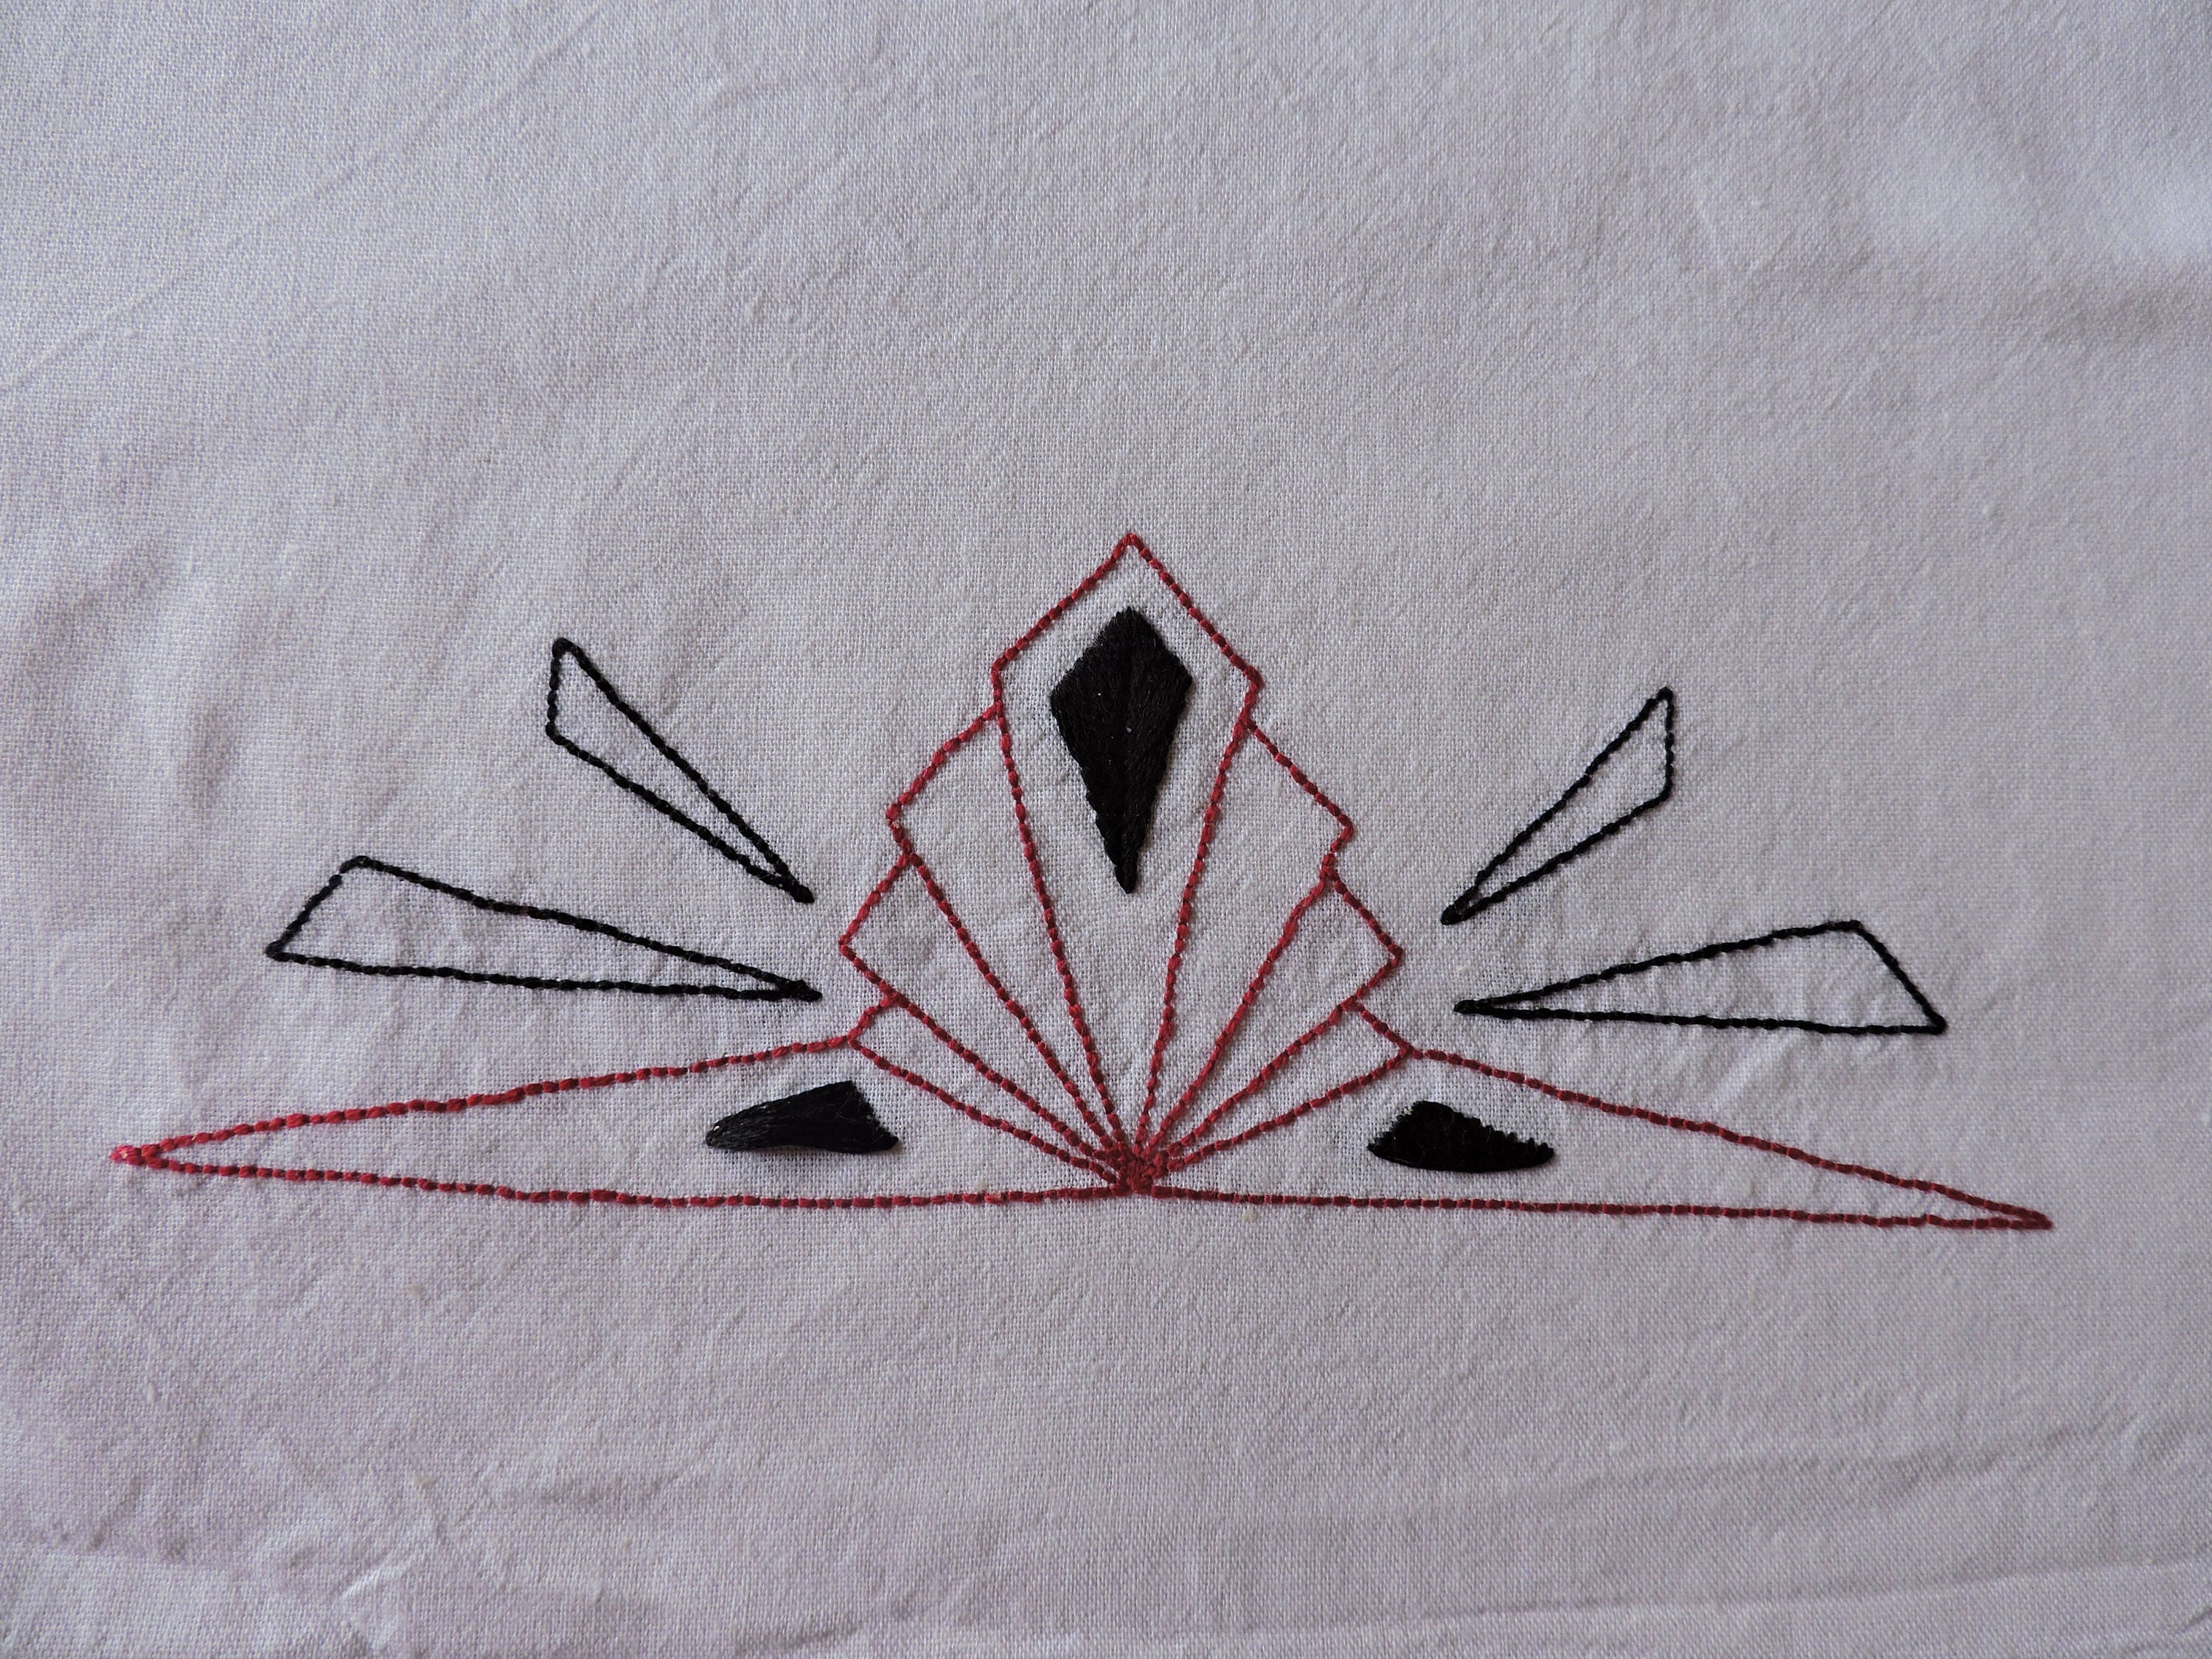 Hand embroidery pattern art deco diamond border pattern art zoom bankloansurffo Choice Image